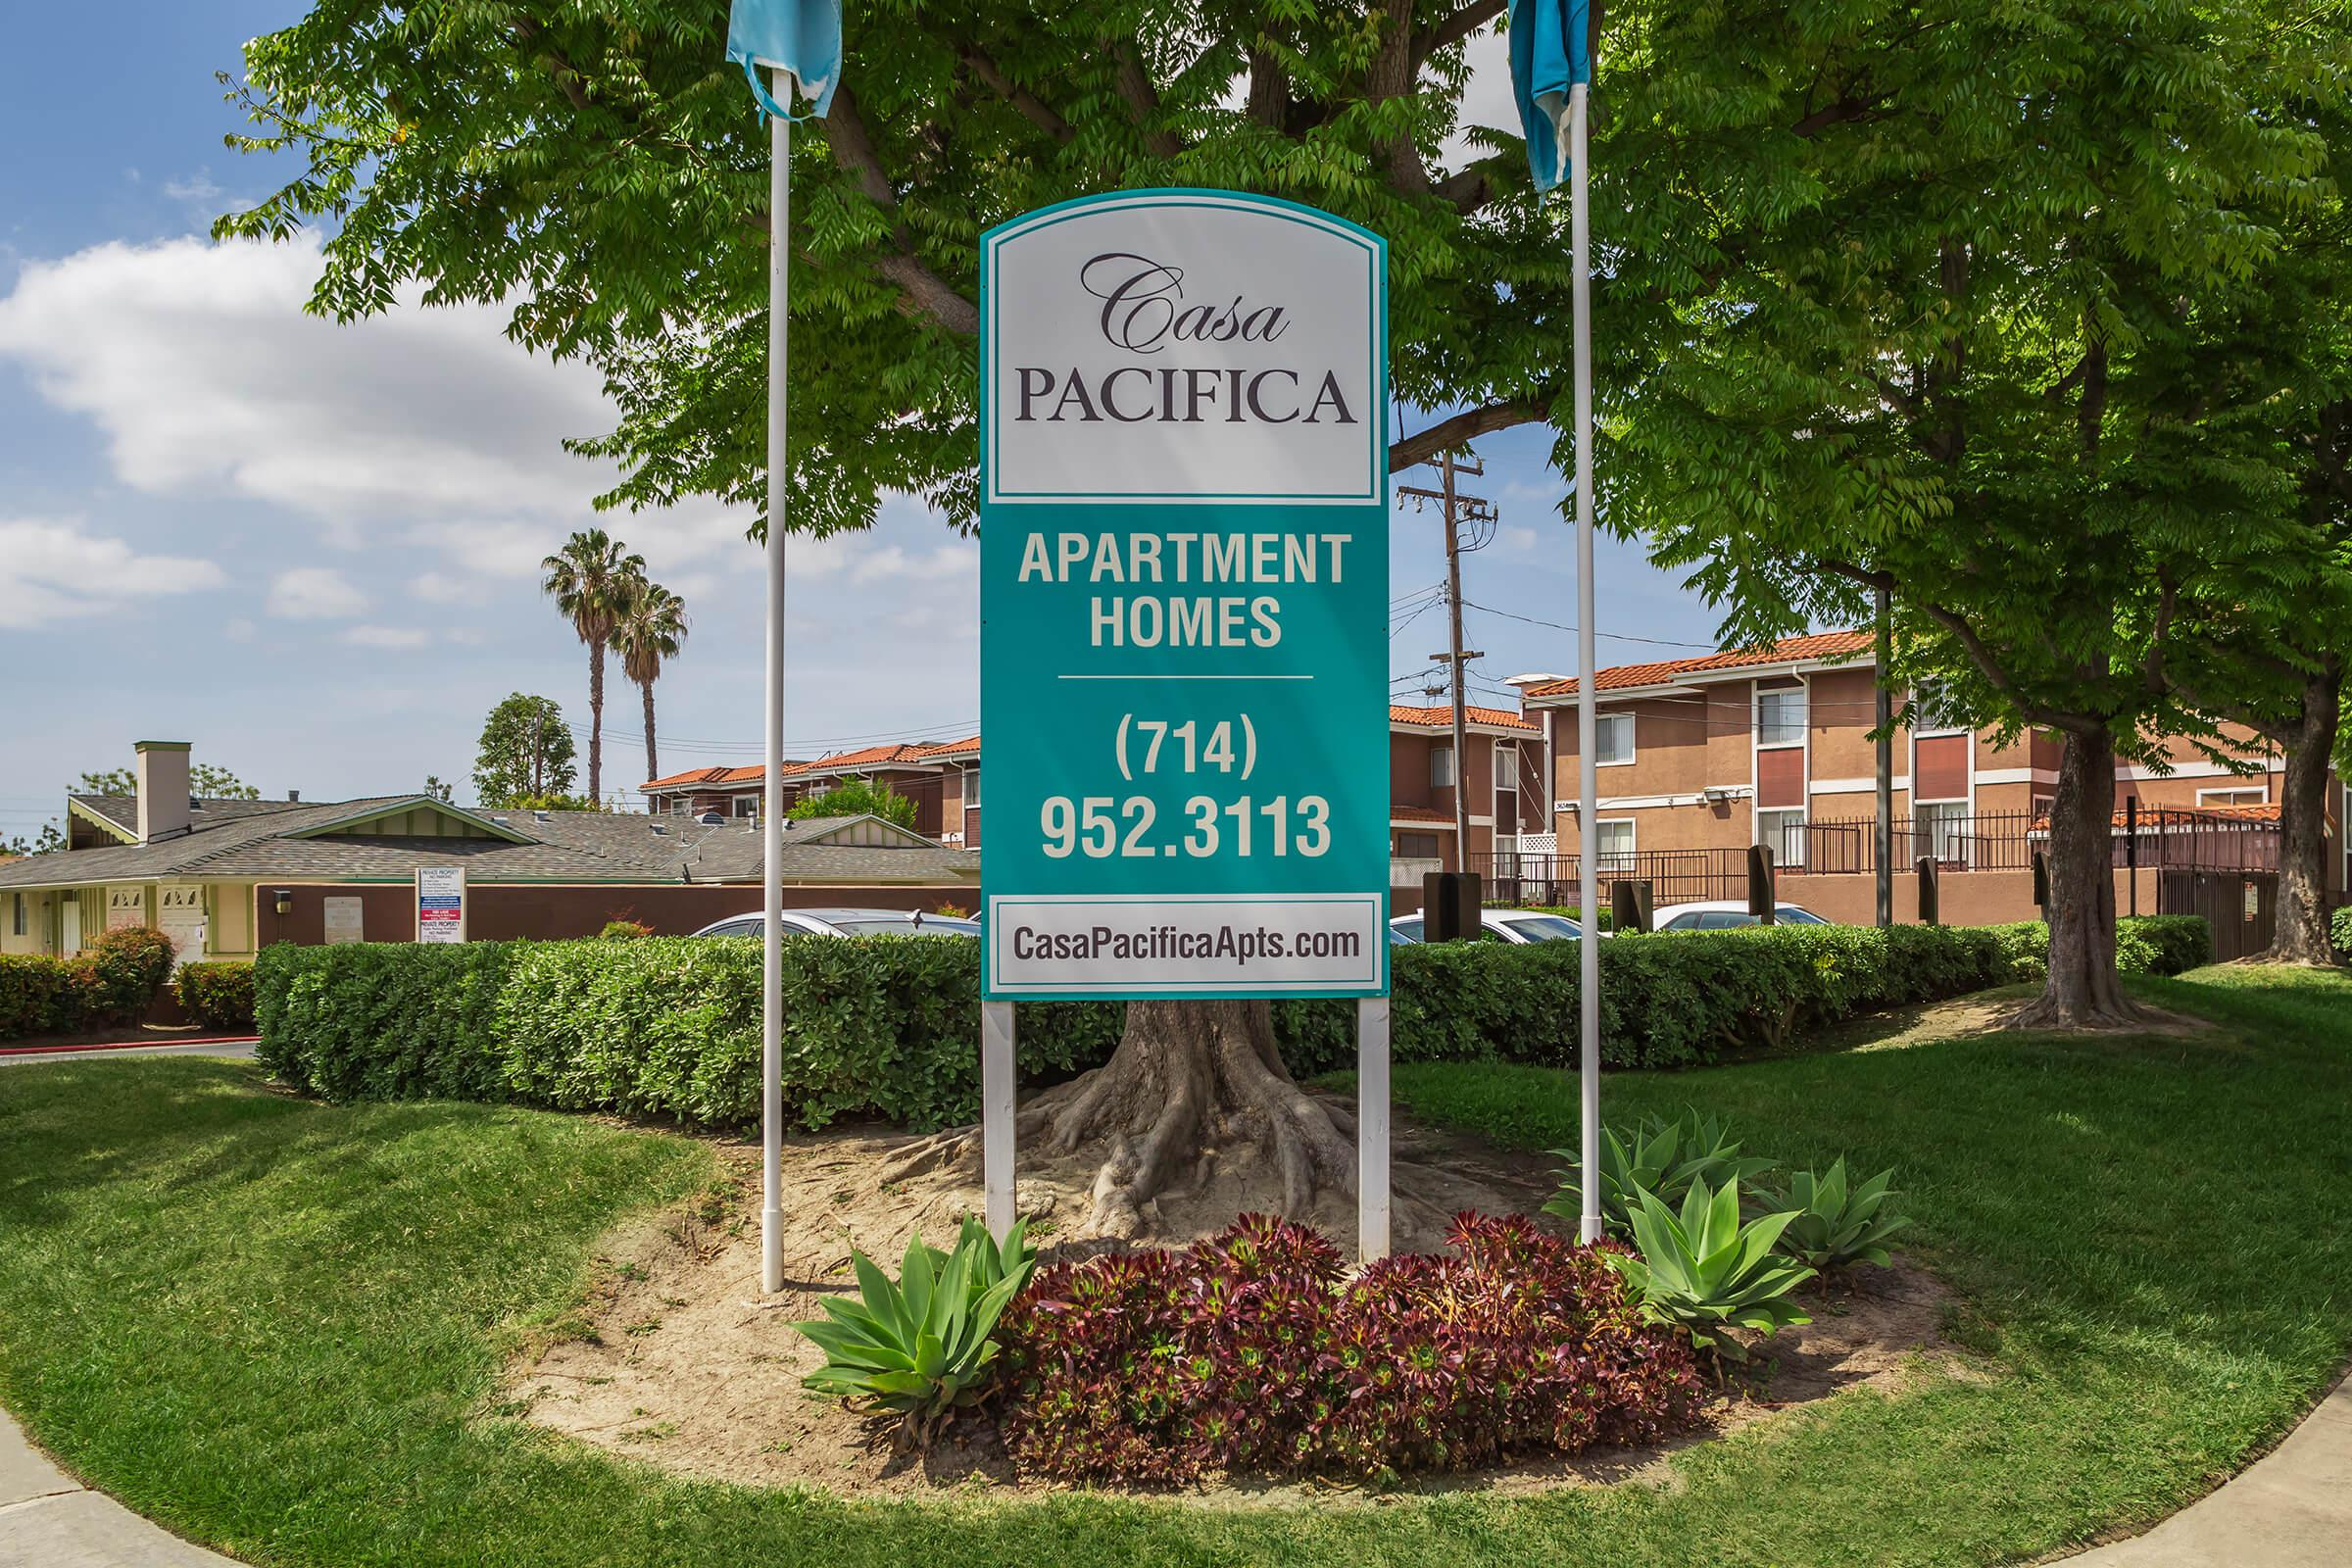 Casa Pacifica Apartment Homes monument sign